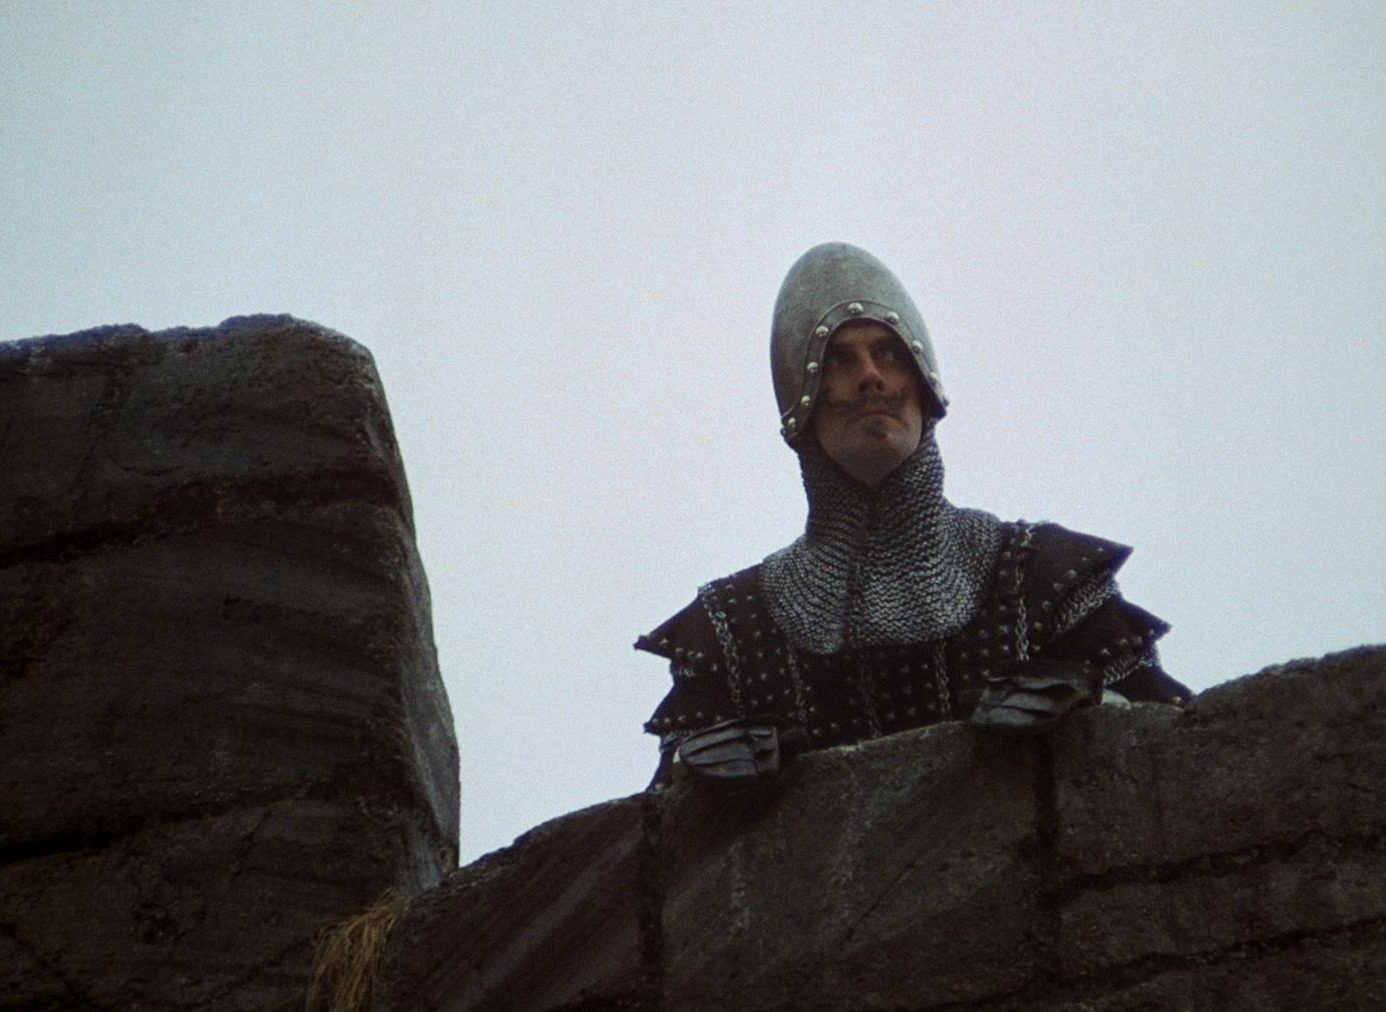 guard e1603801765187 10 Things You Never Knew About John Cleese